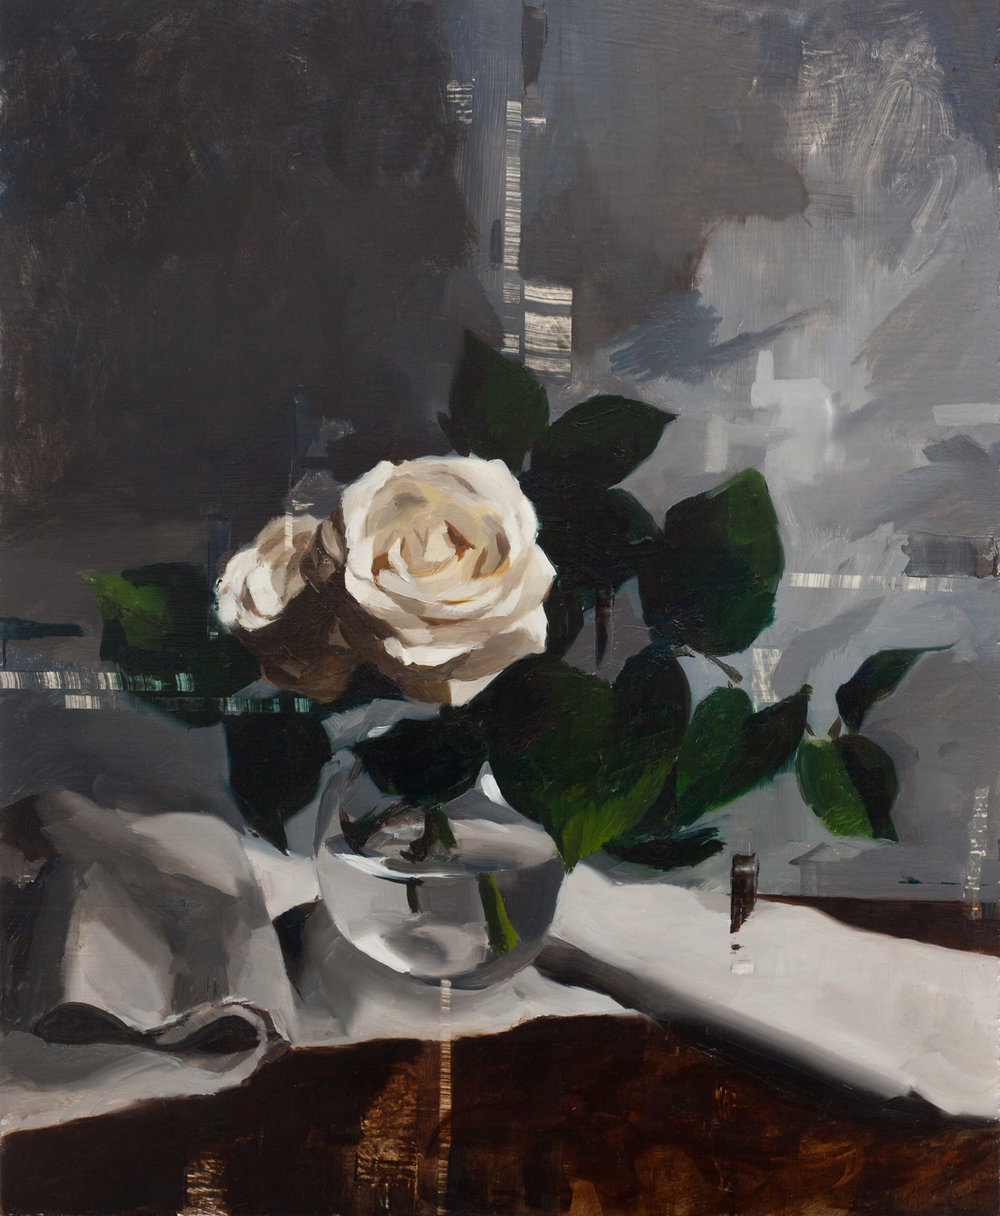 White Roses and Linen on the Table